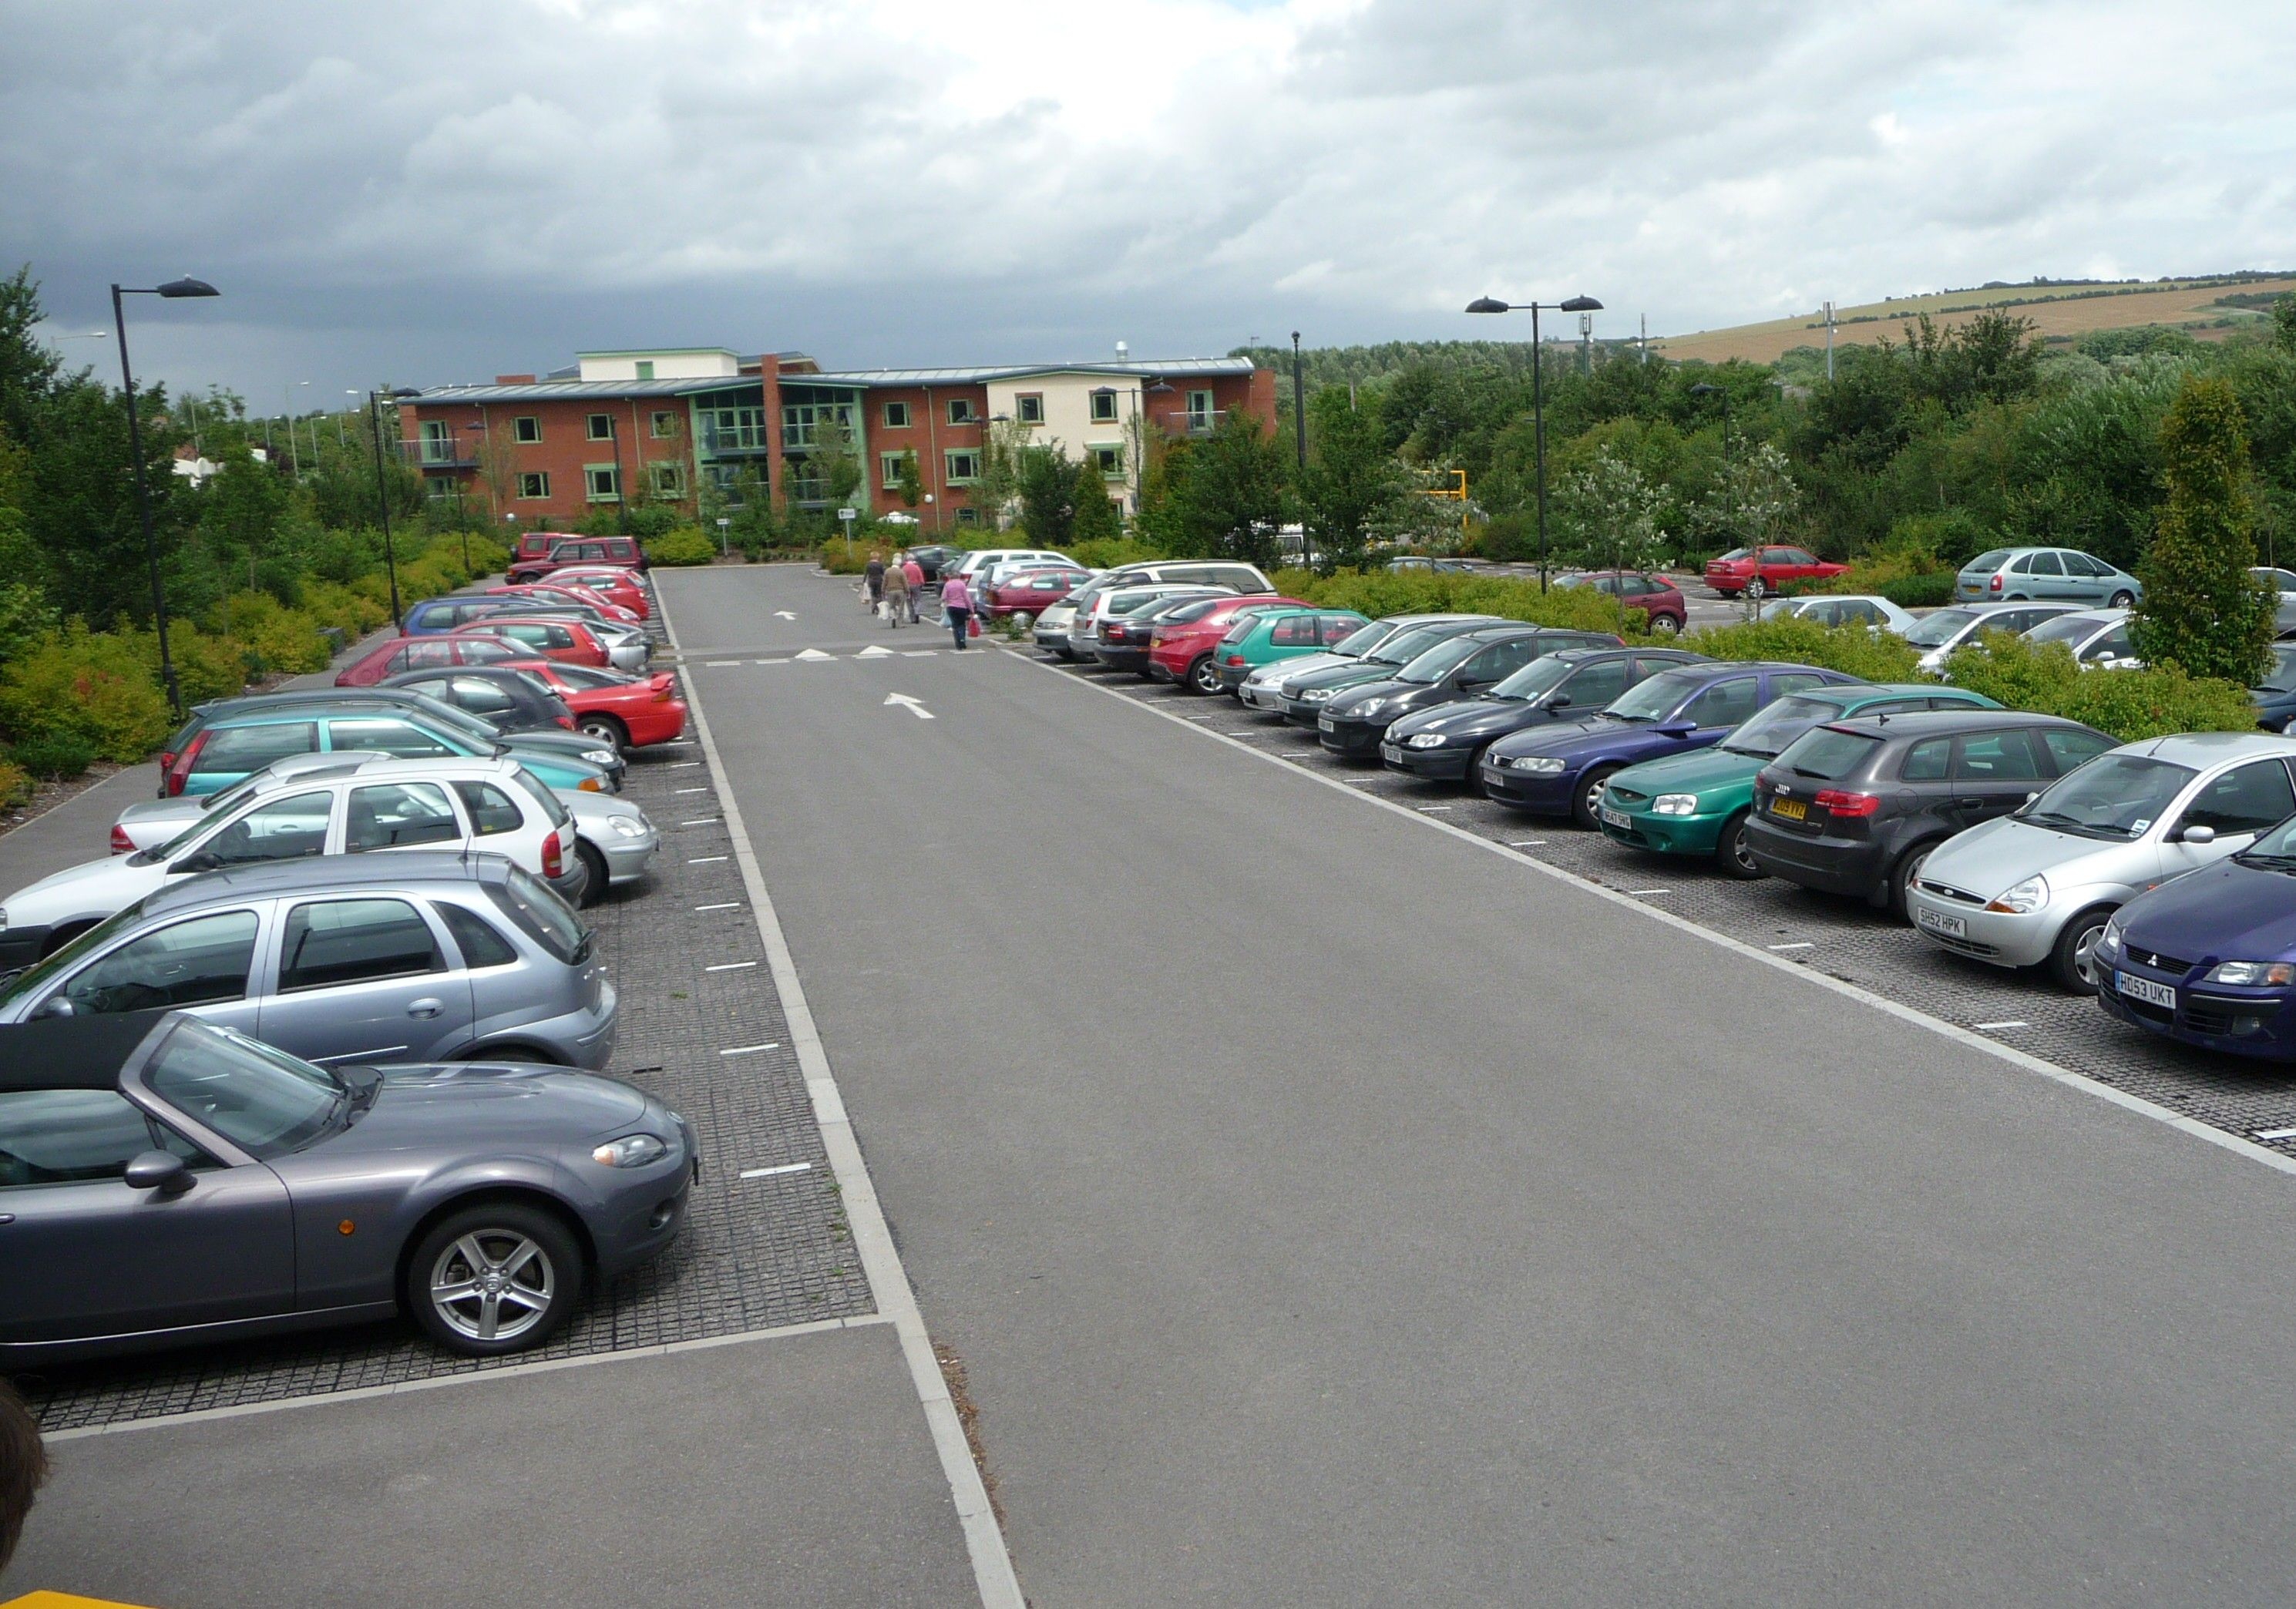 visit parking nexus and find a parking space for your car in san